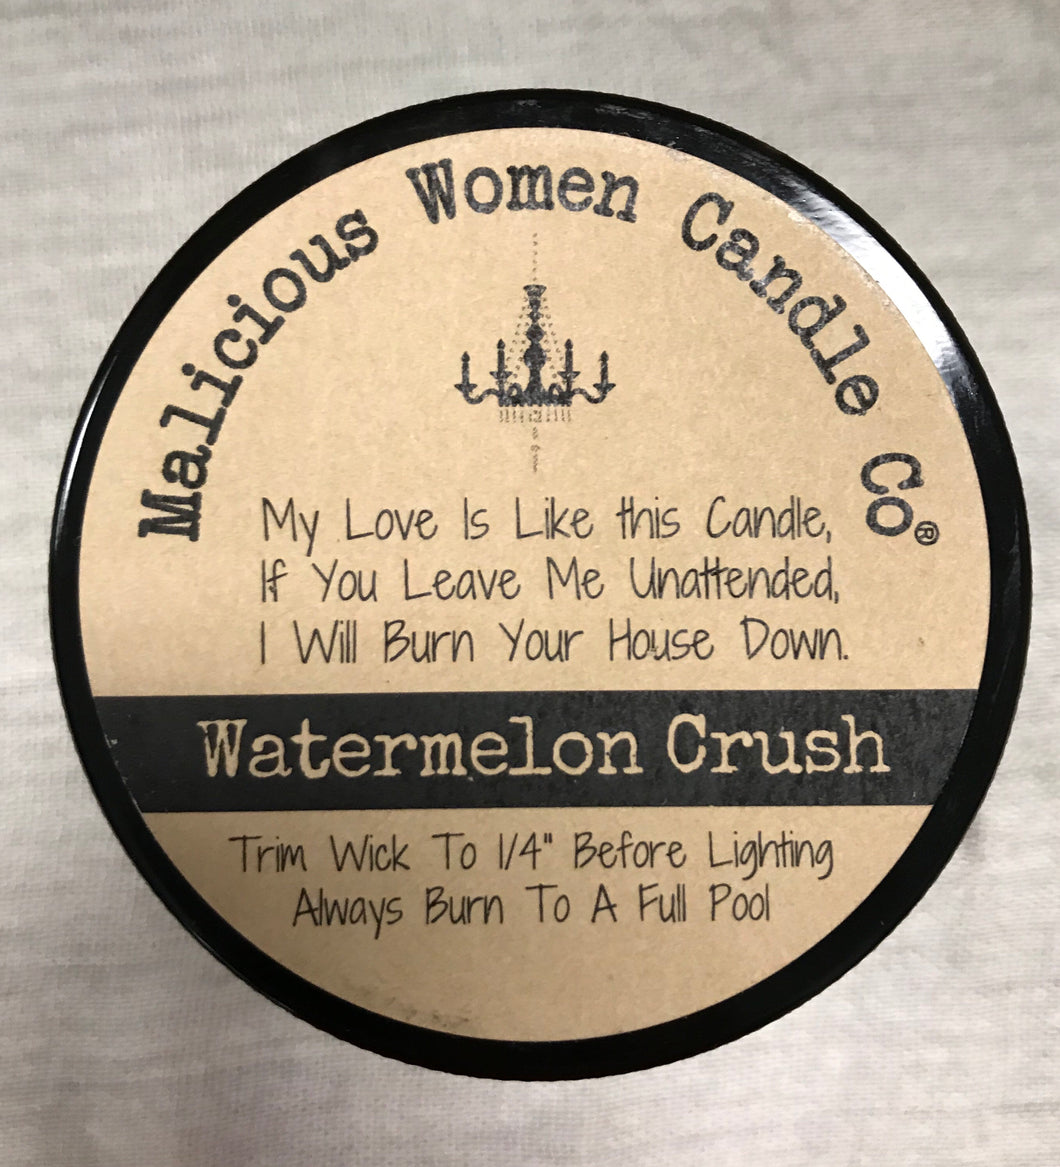 Watermelon Crush Candle: I don't run, I'm a MotherF'n mermaid. - Grace on Broadway